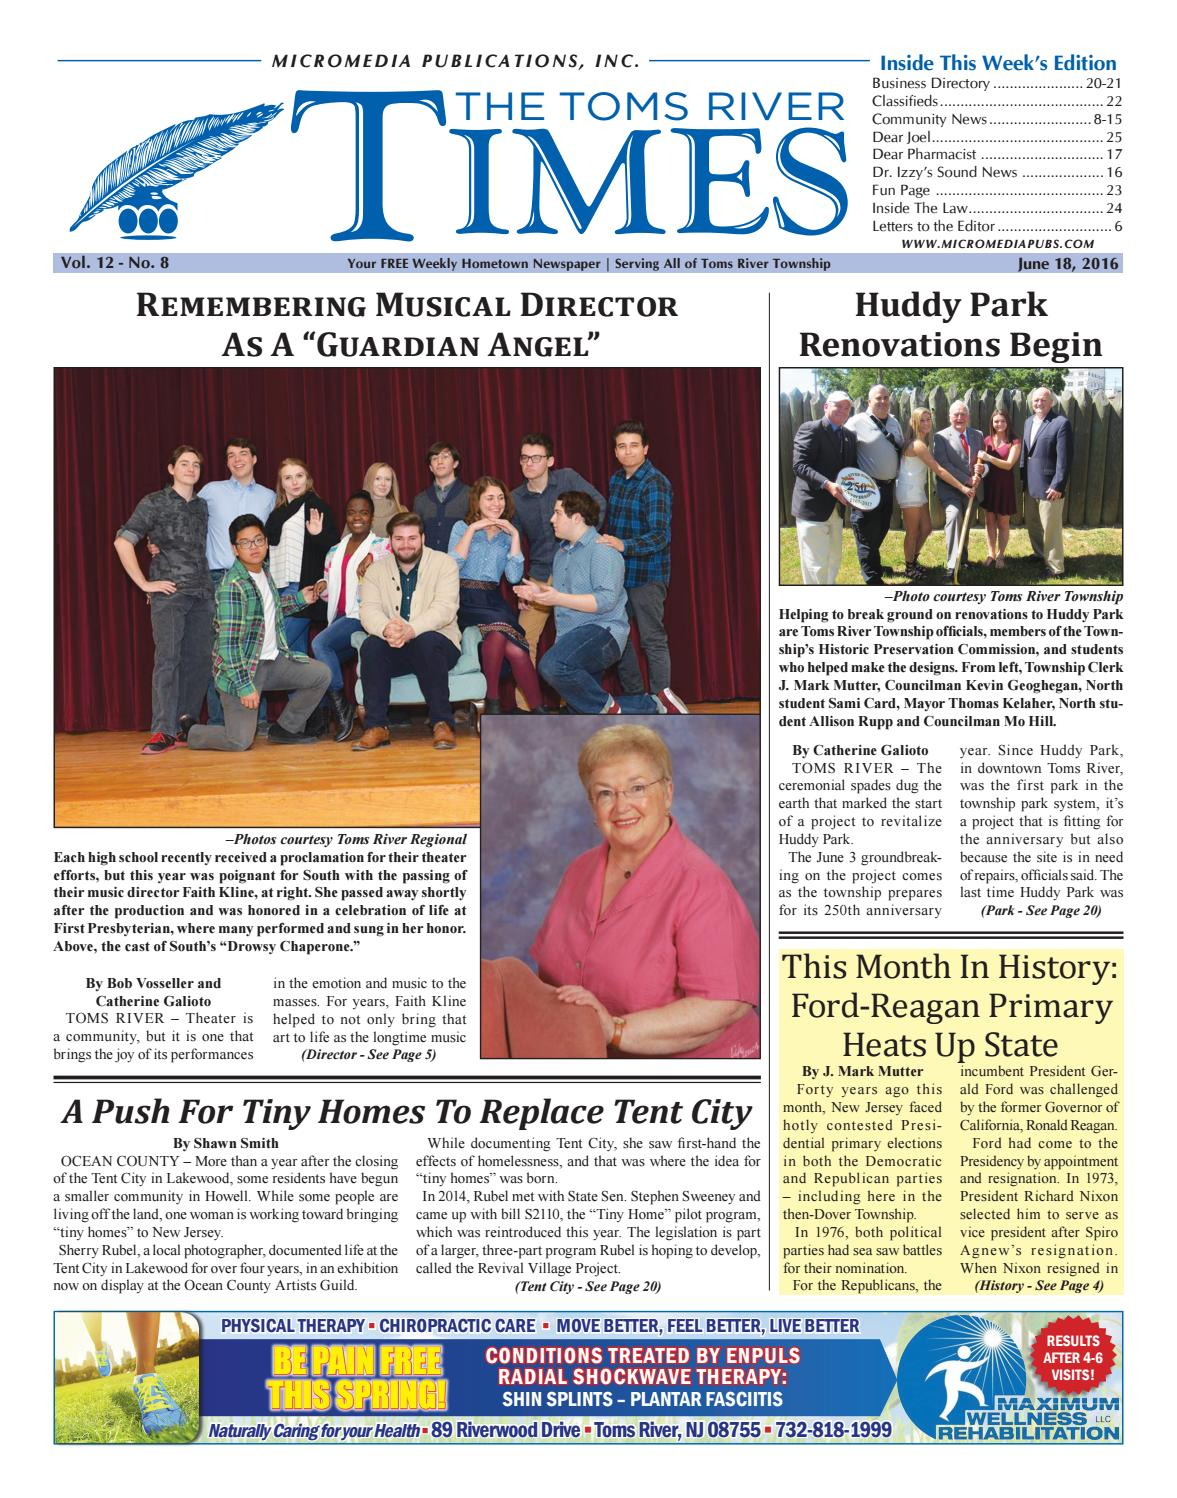 2016-06-18 - The Toms River Times by Micromedia Publications